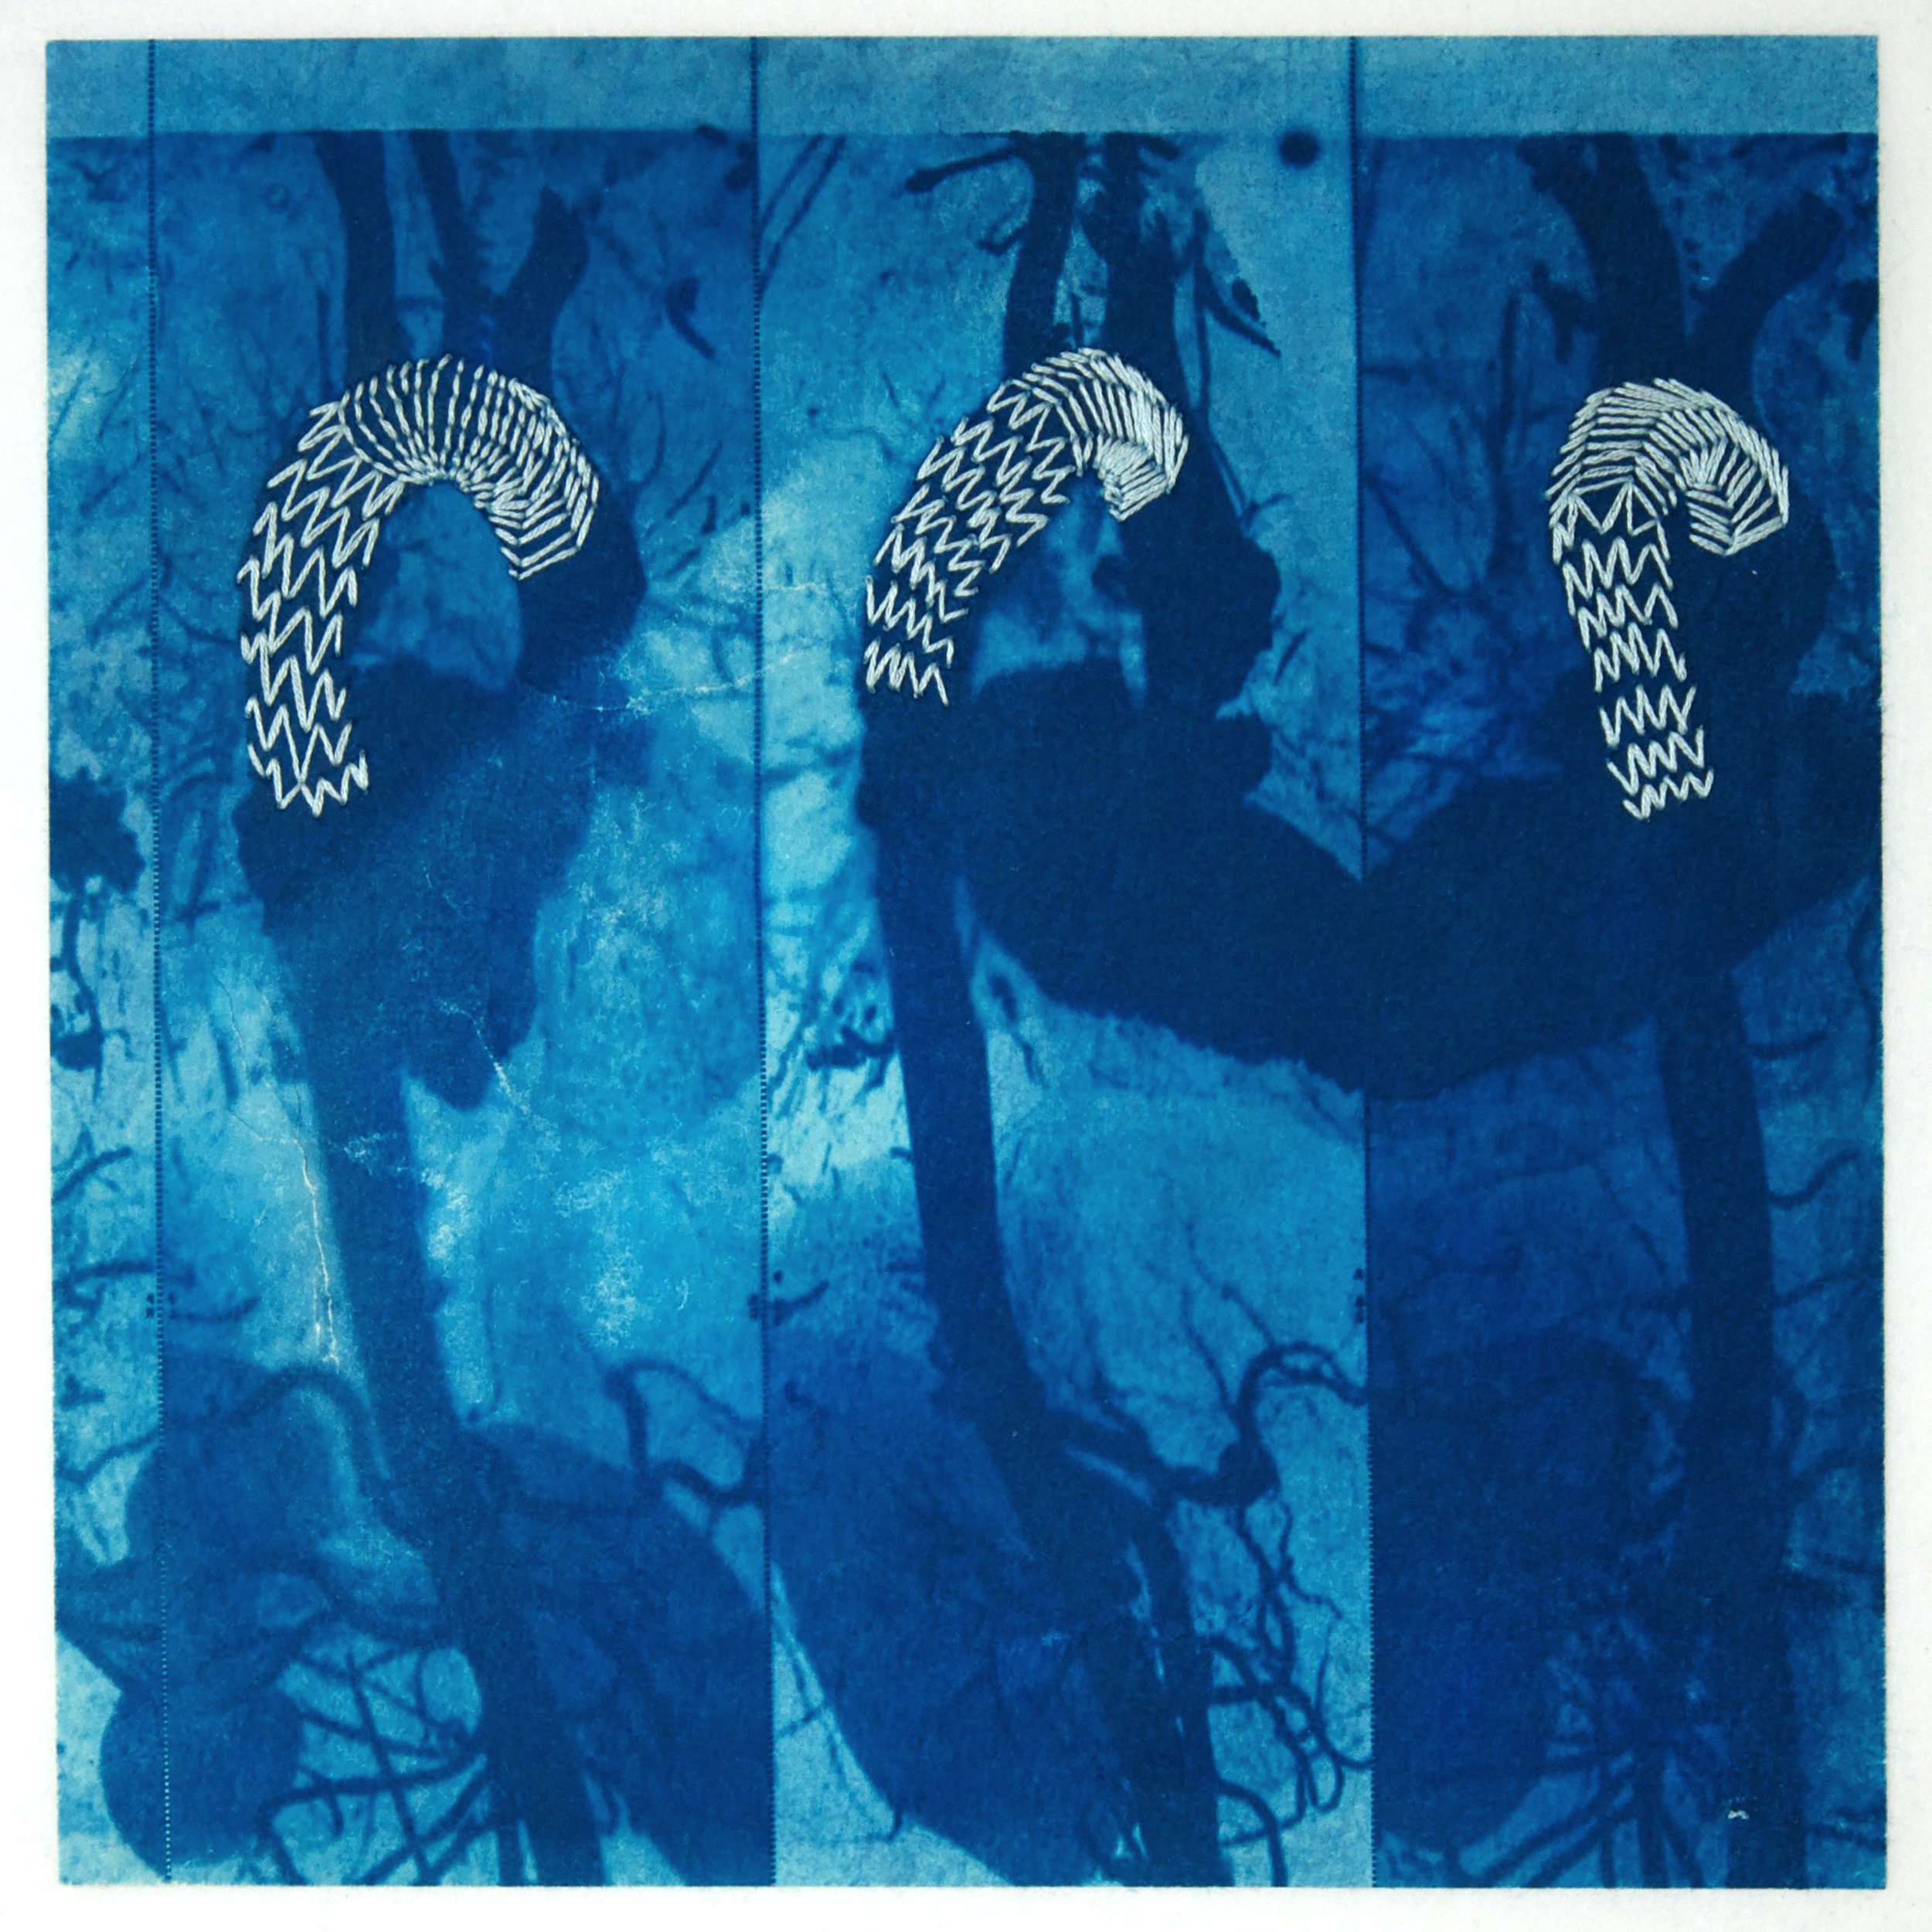 Michele Lane, Conduit #2' (detail), cyanotype with embroidery (unique state)